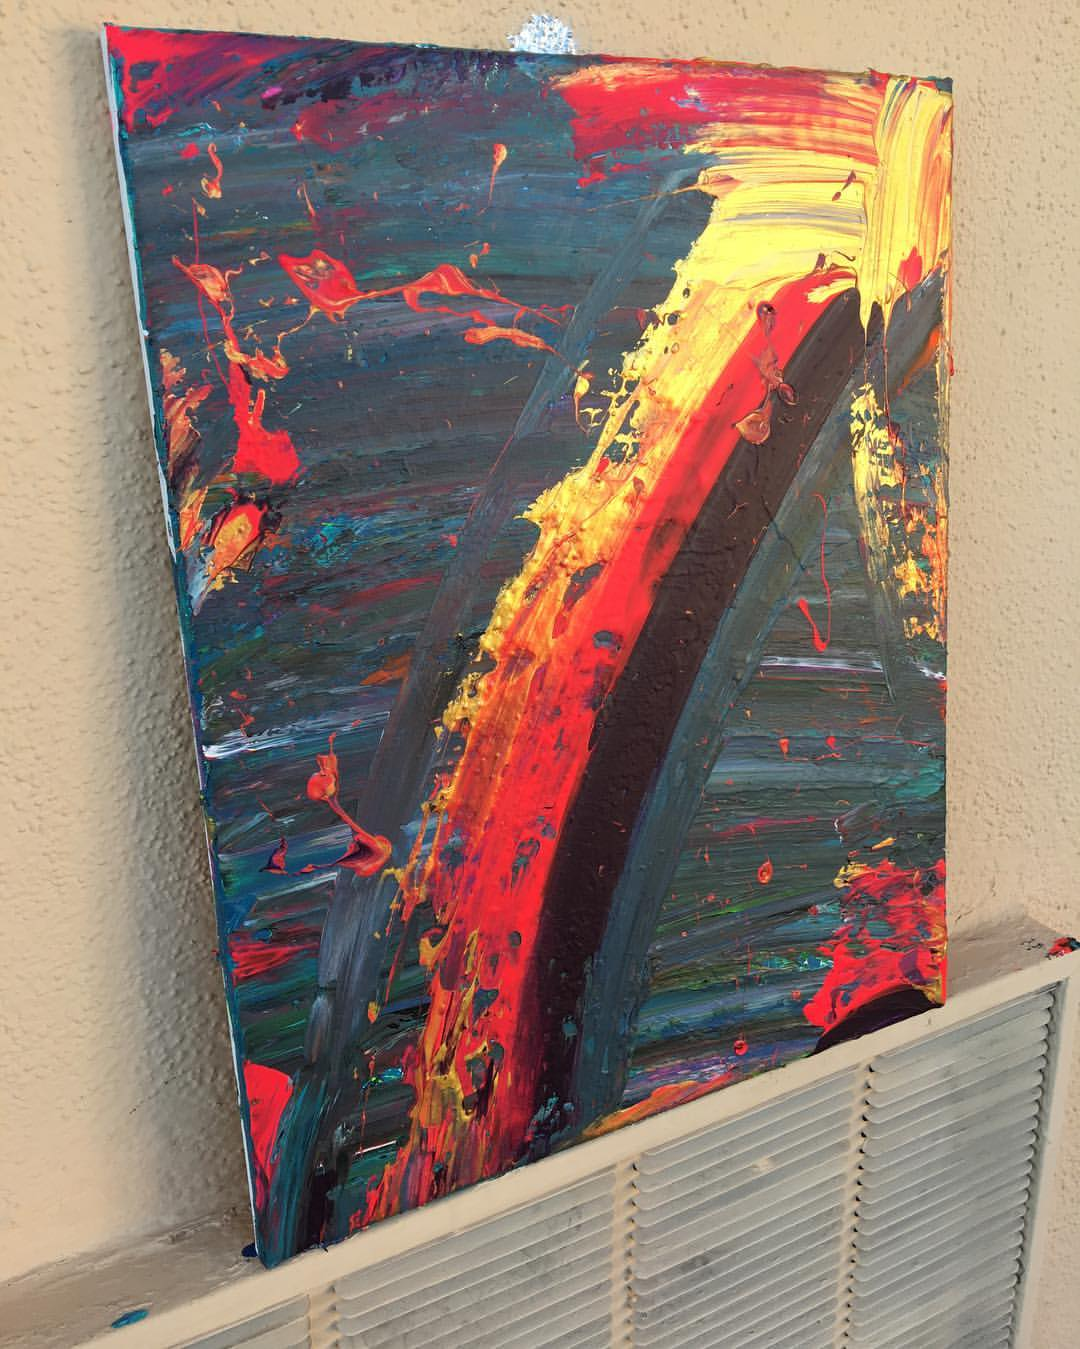 Gleaming 2016 - SOLD